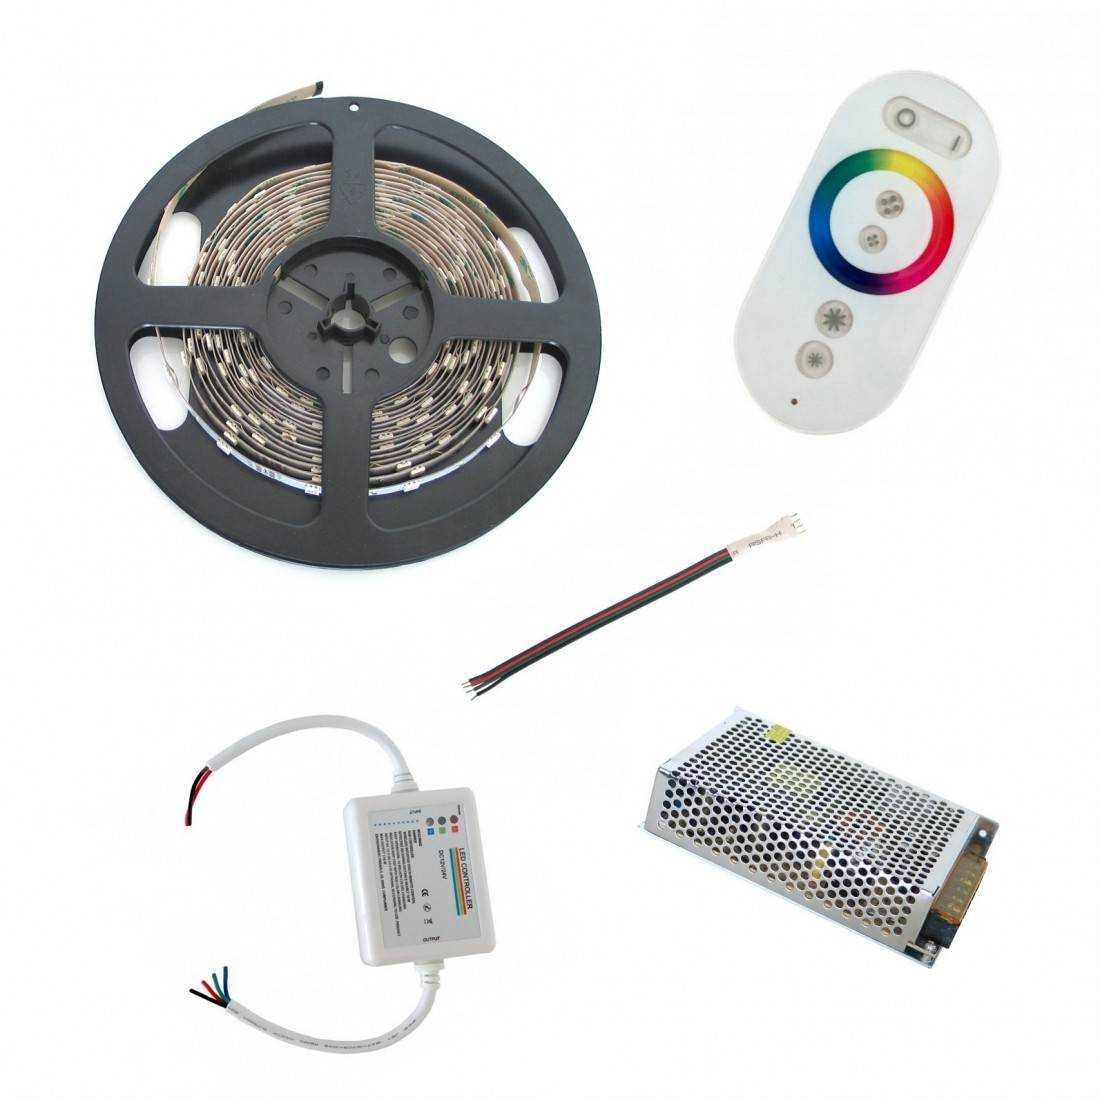 Pack ruban led rgb tactile fils 10m - Ruban led rgb ...